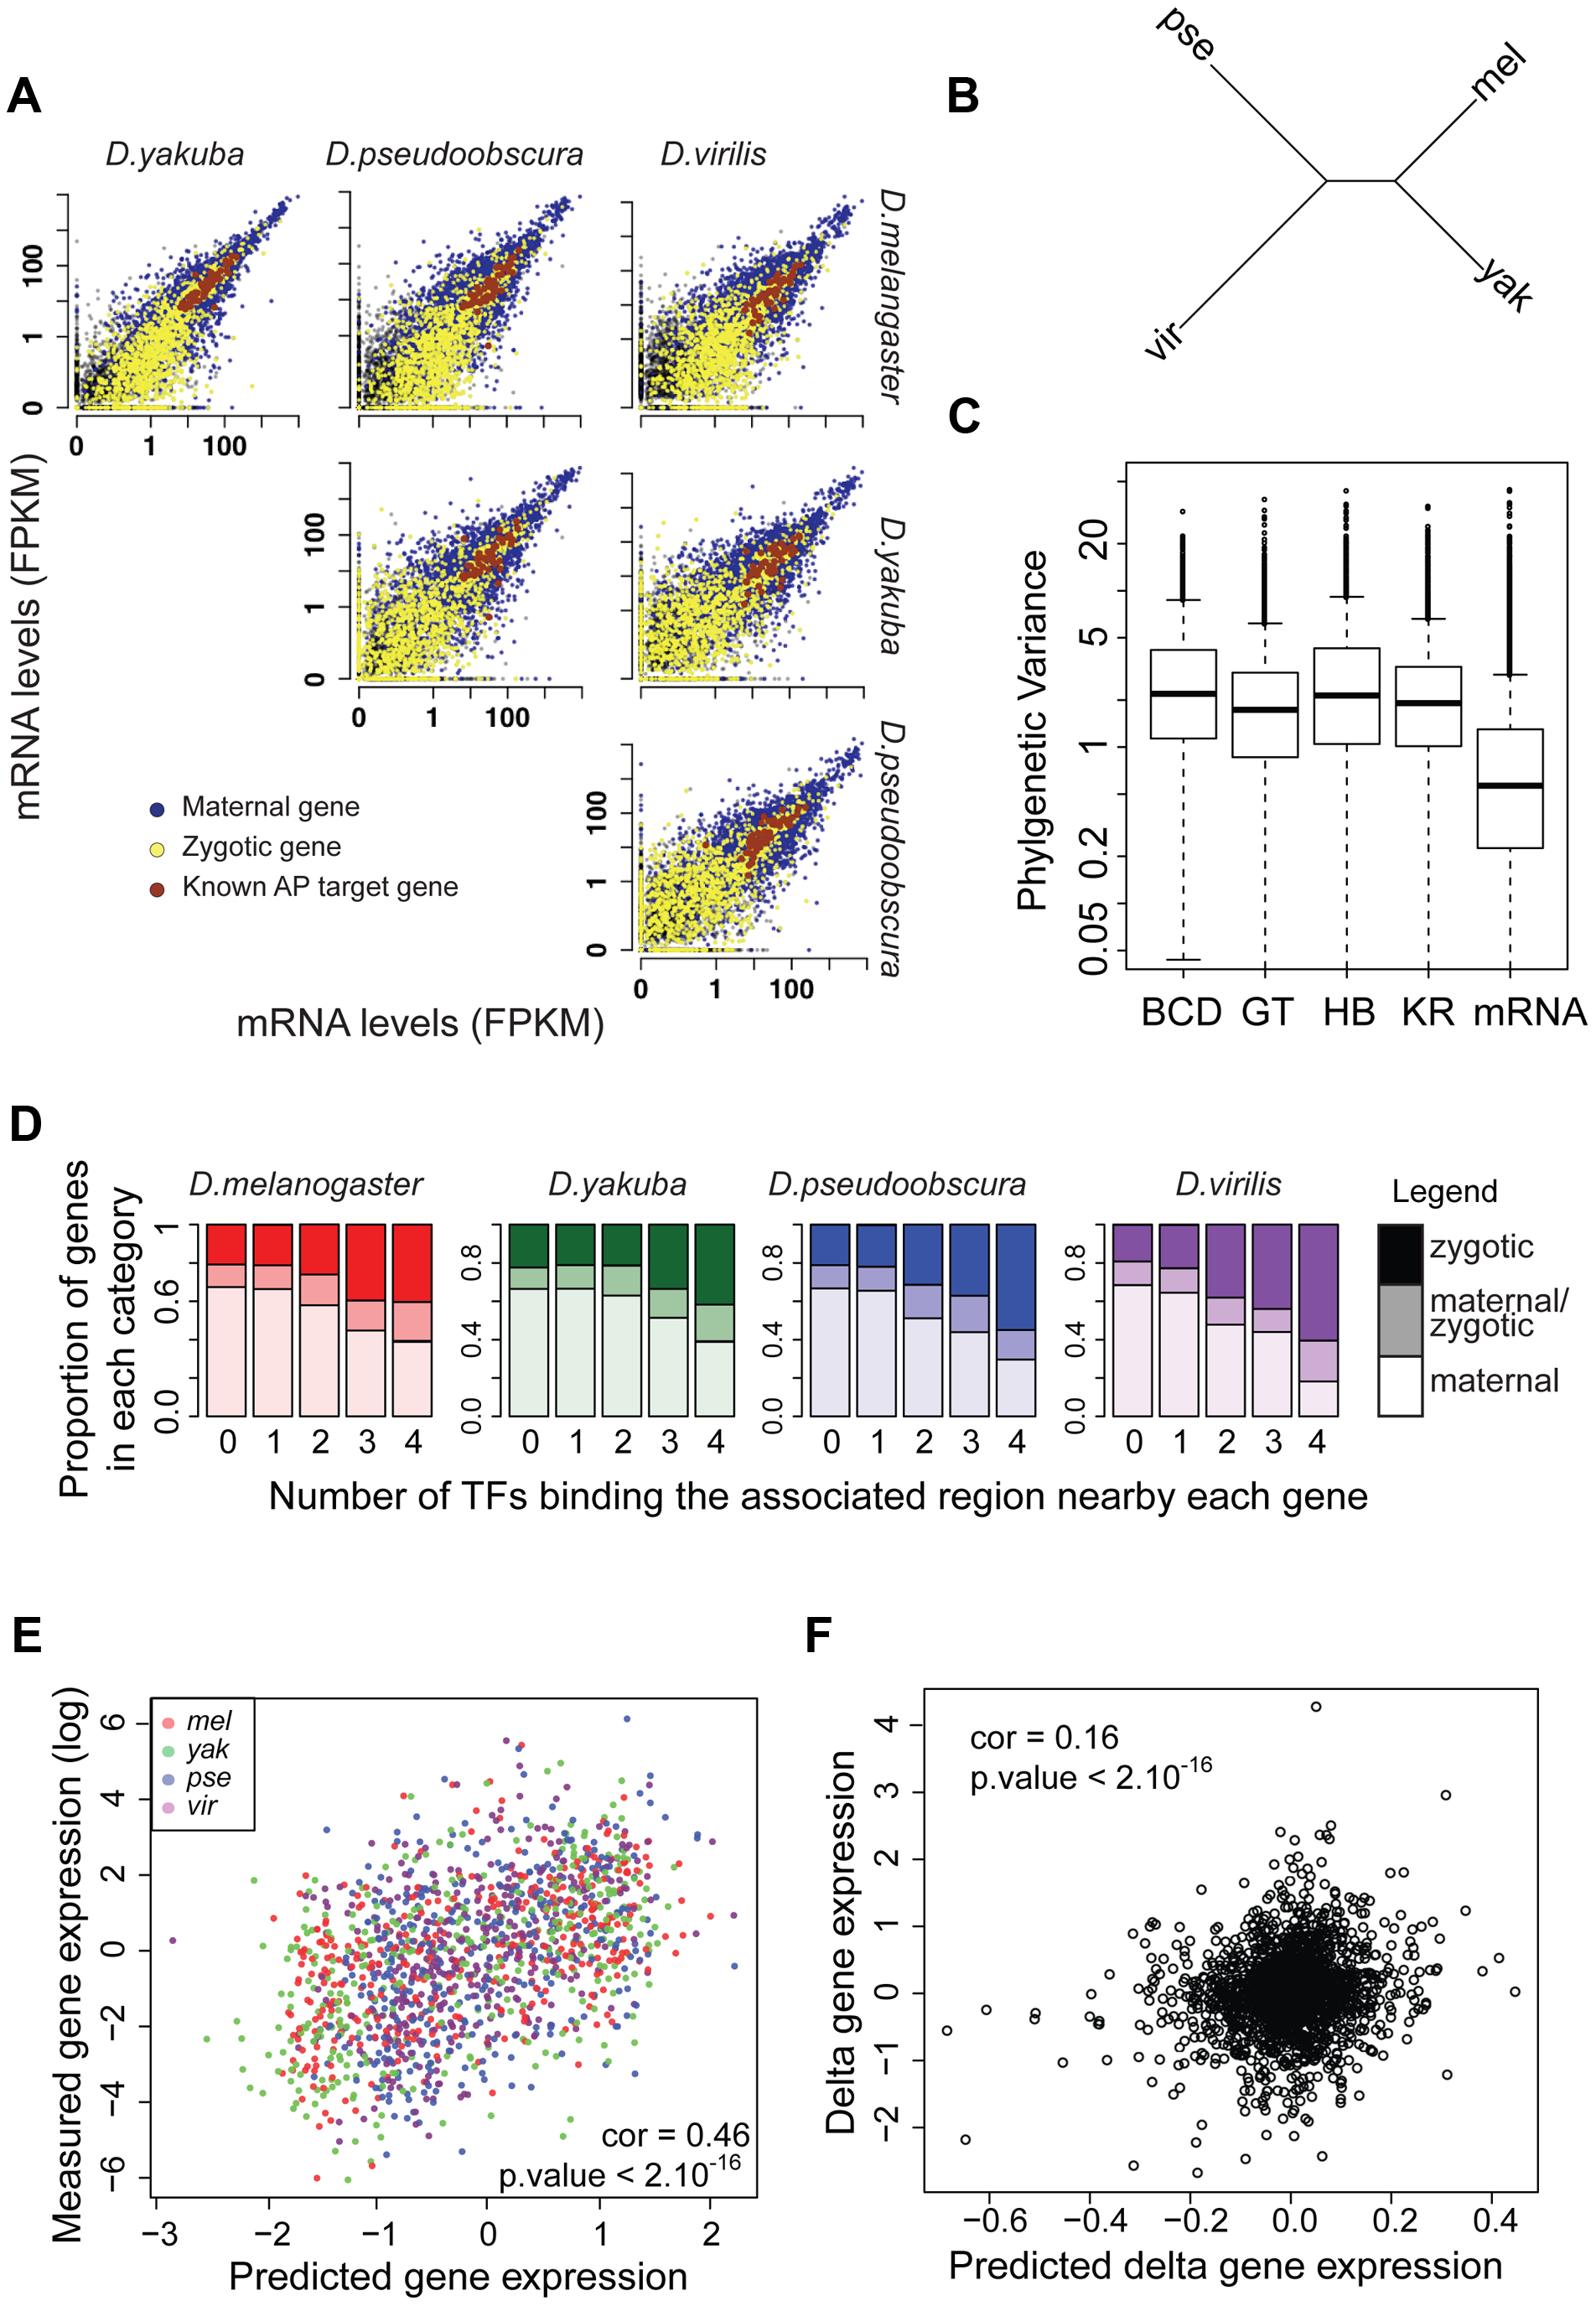 mRNA levels are highly conserved despite high divergence of BCD, GT, HB and KR binding.